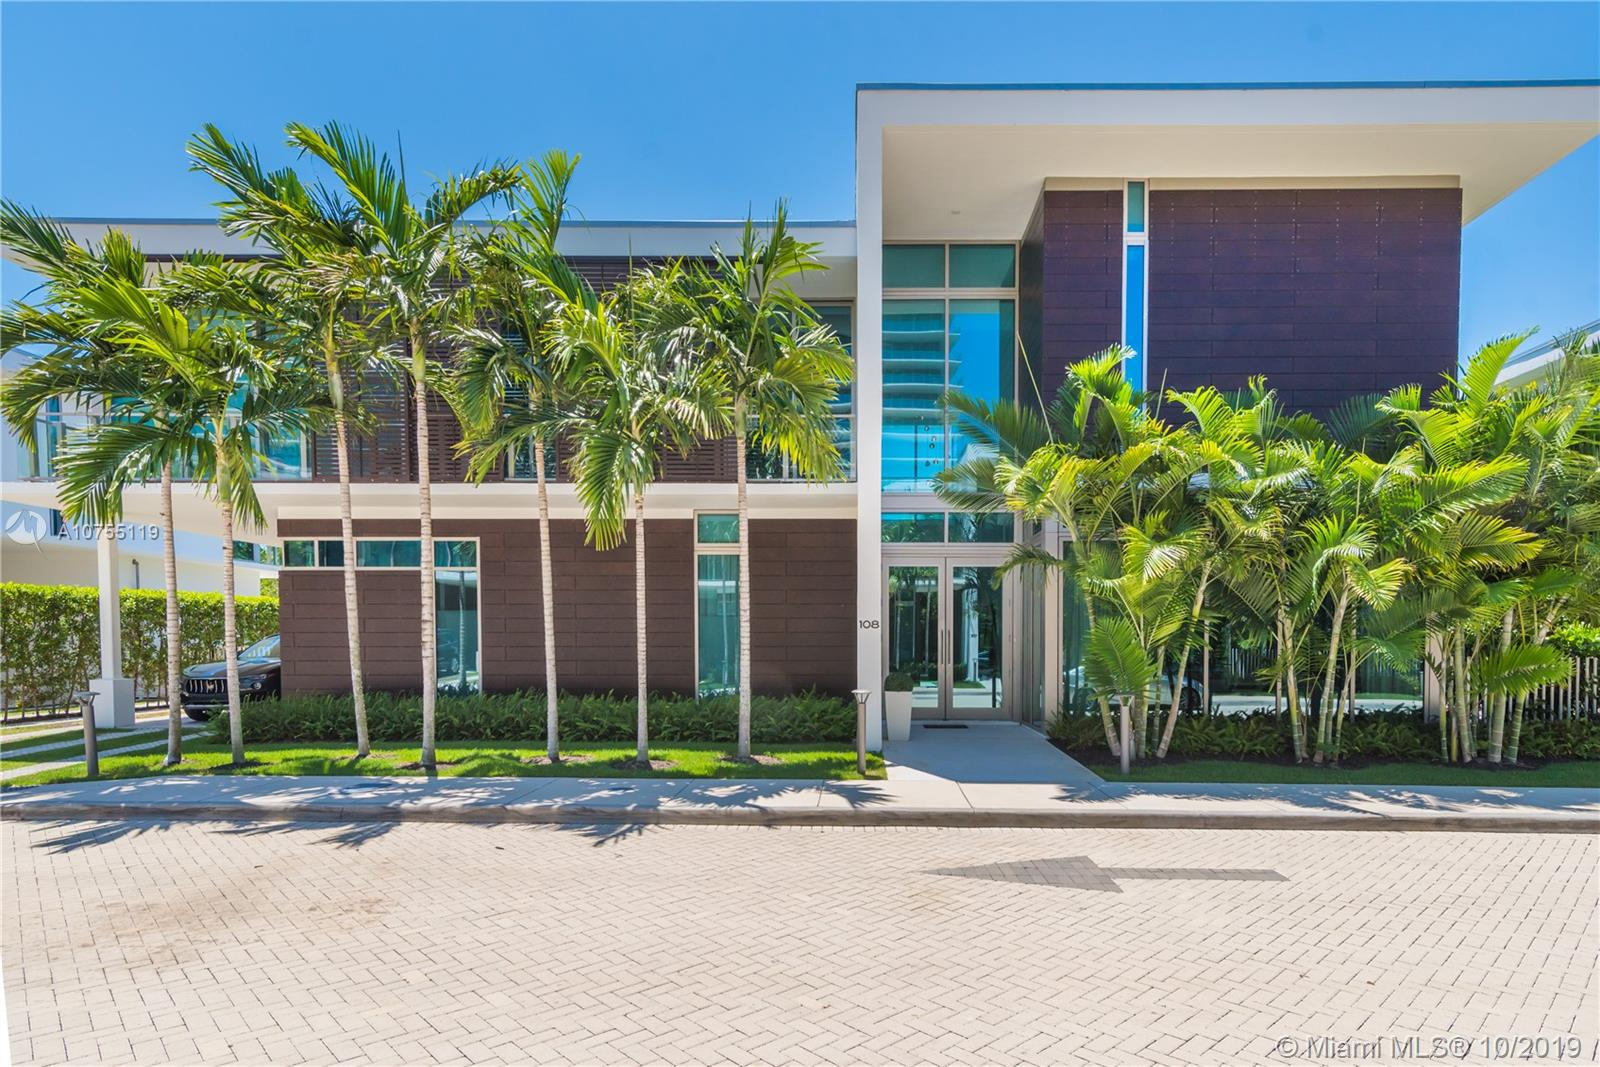 108  Reef Ln #108 For Sale A10755119, FL